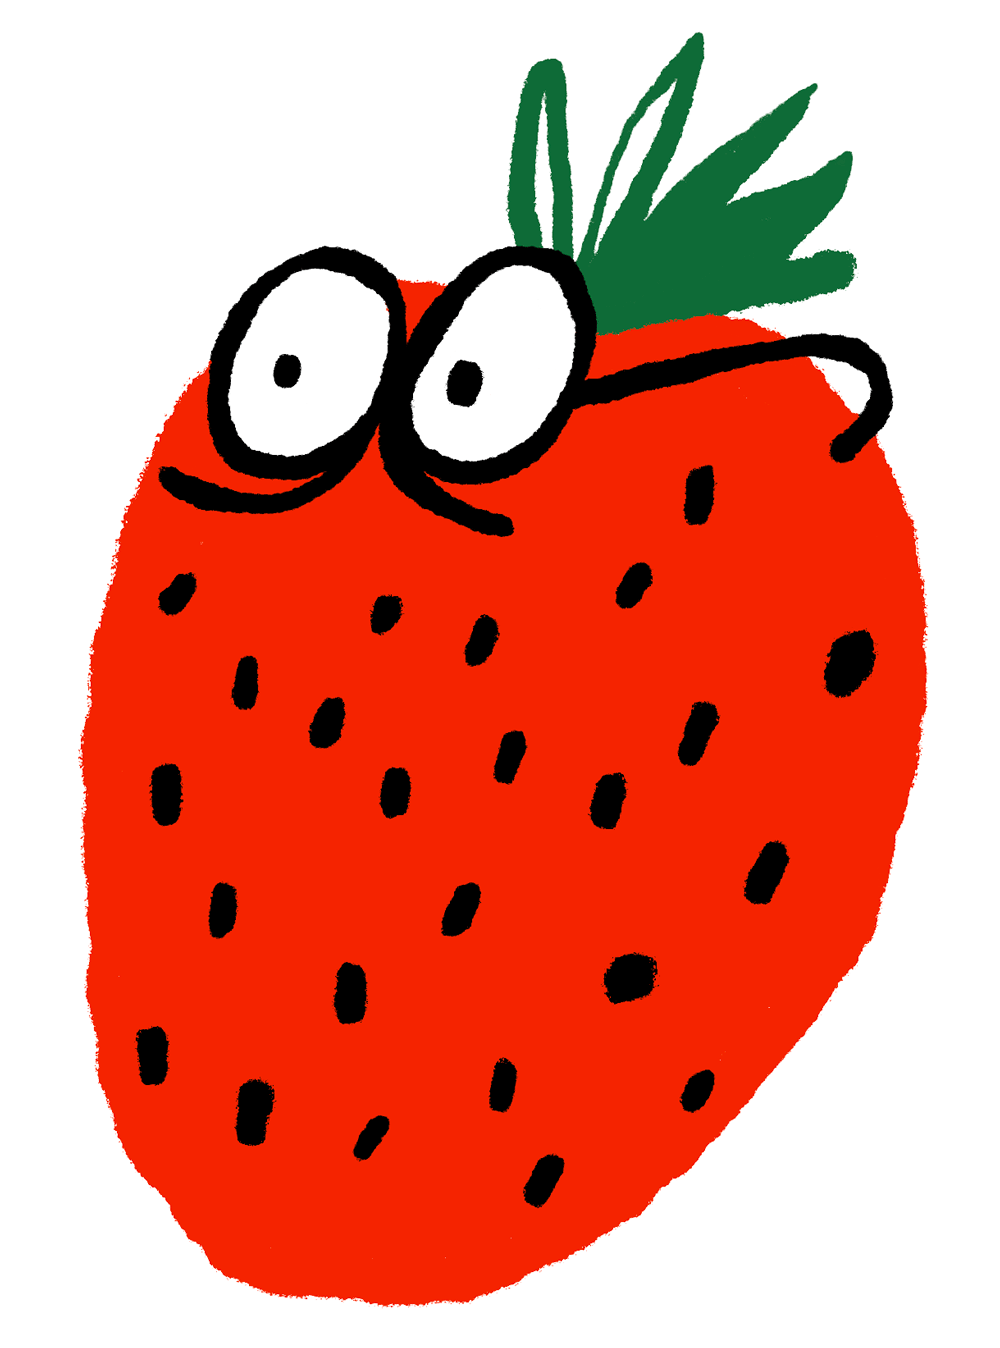 illustration of a strawberry with eyes